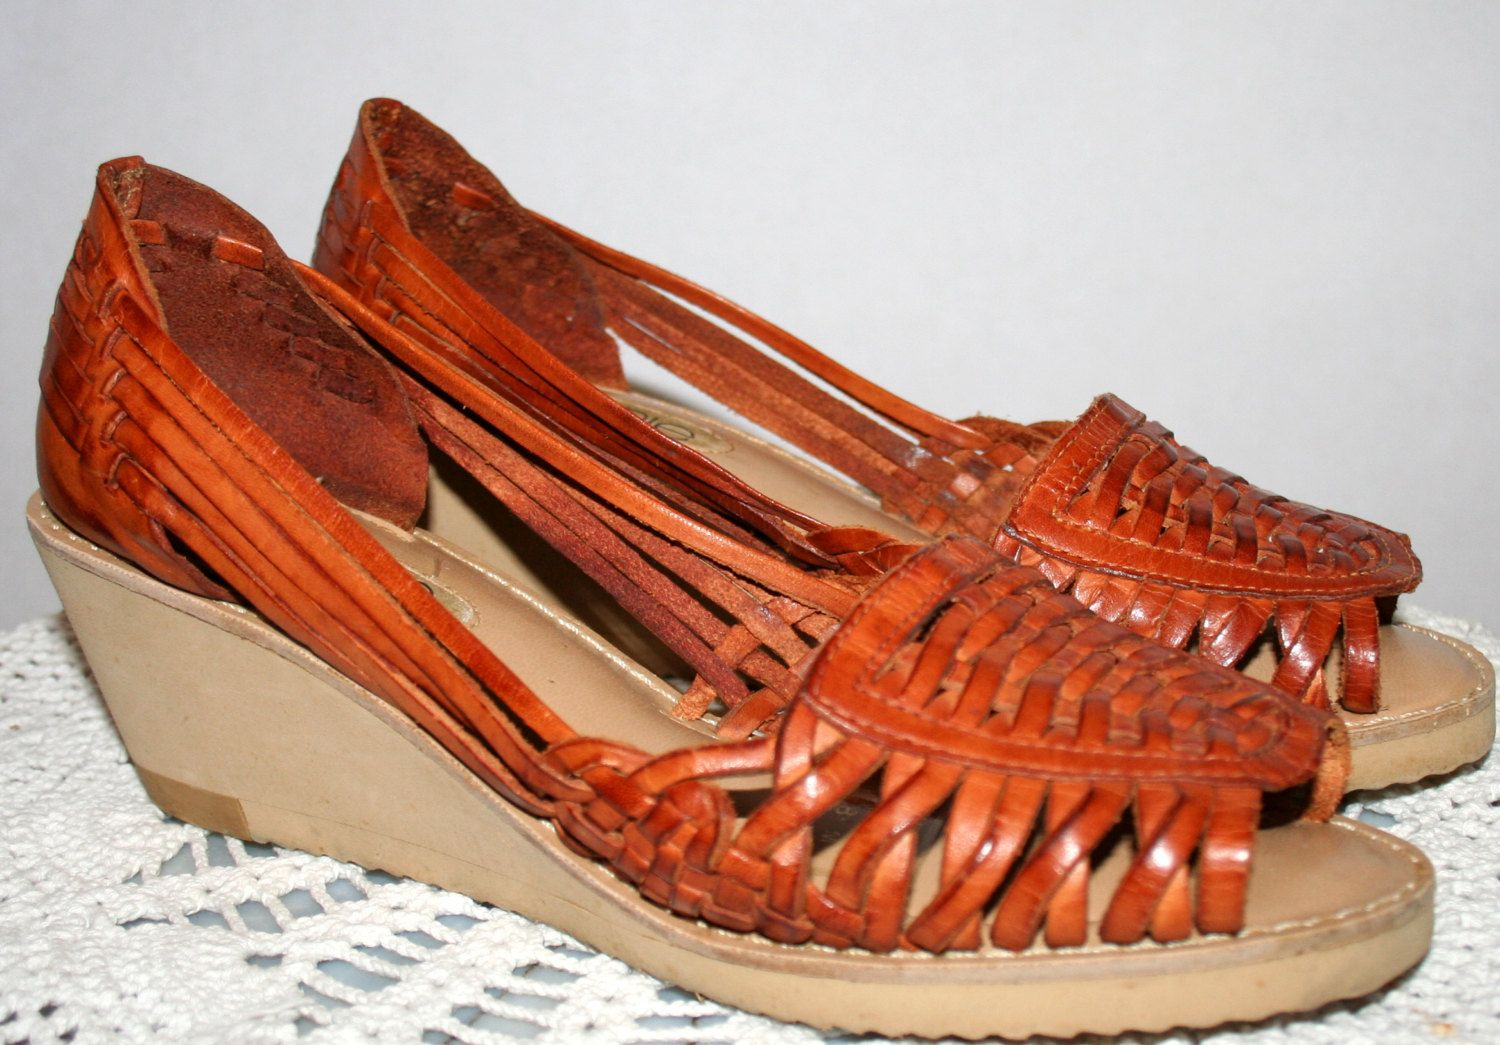 7c95ce41860a Women s Connie Huarache Style Brown Woven Leather Platform Peep Toe Wedge  Heel Sandal Shoes sz 8 M by sweetestvintage on Etsy